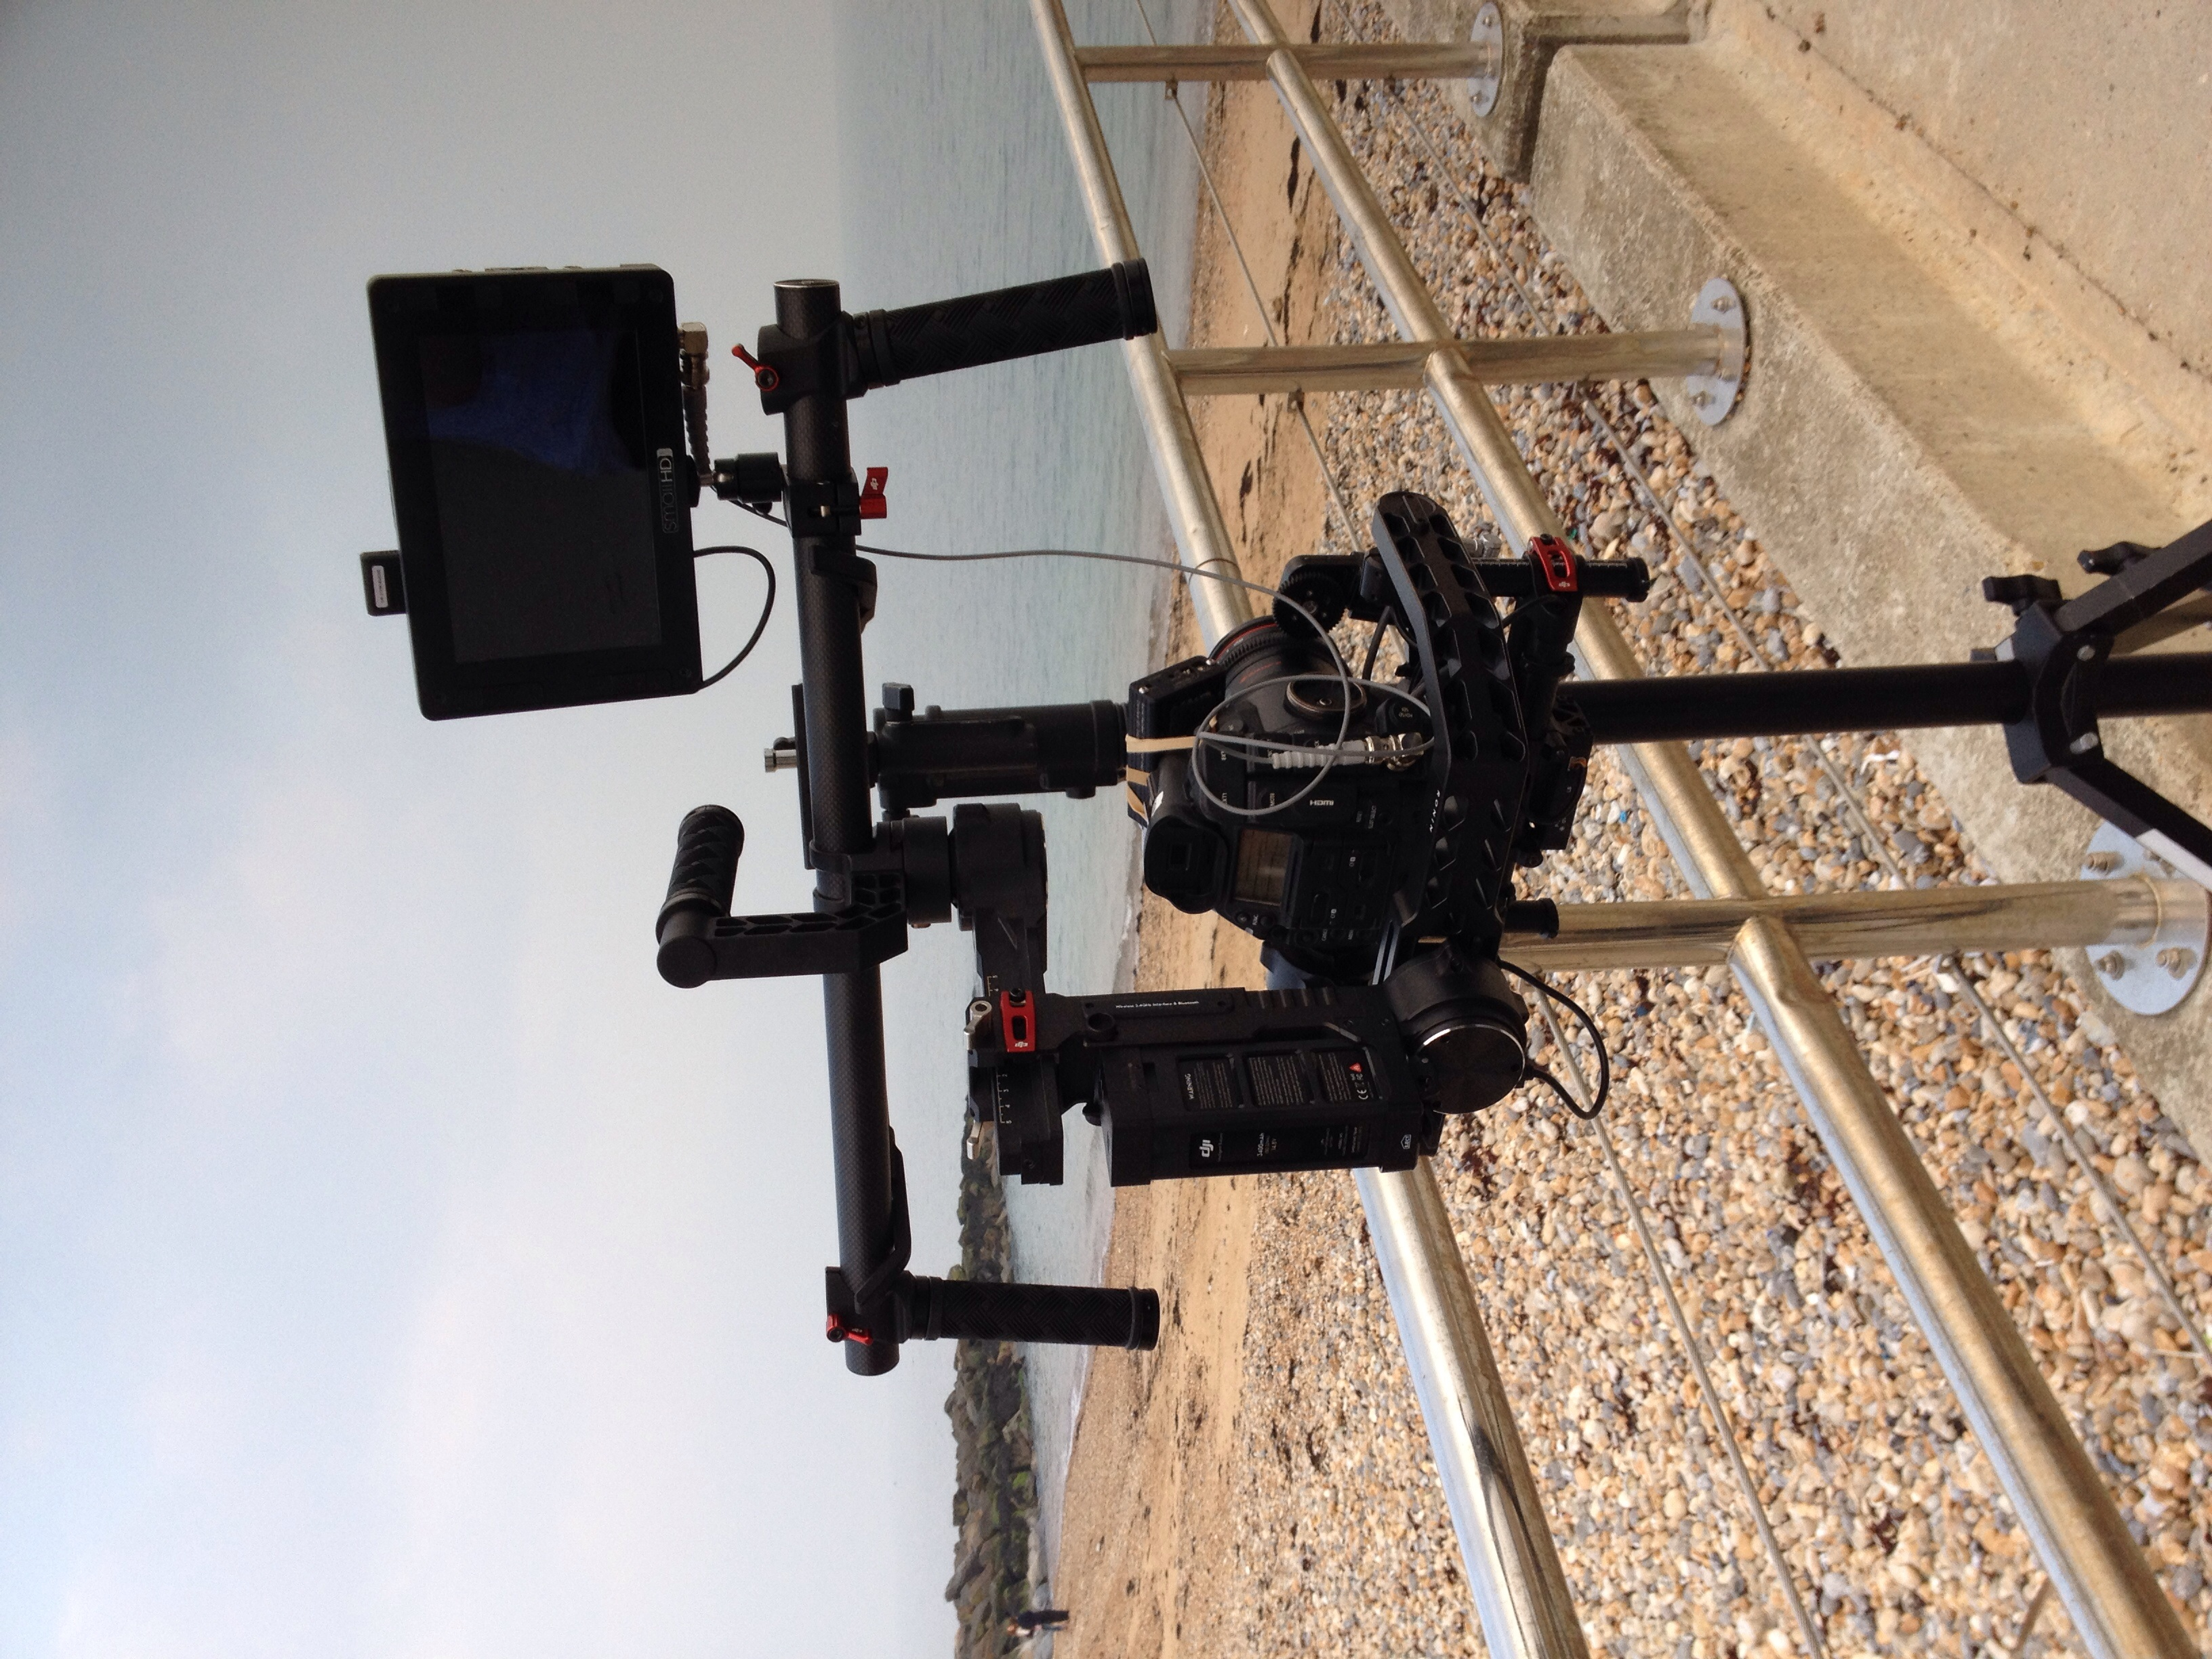 DJI Ronin and c300 rig